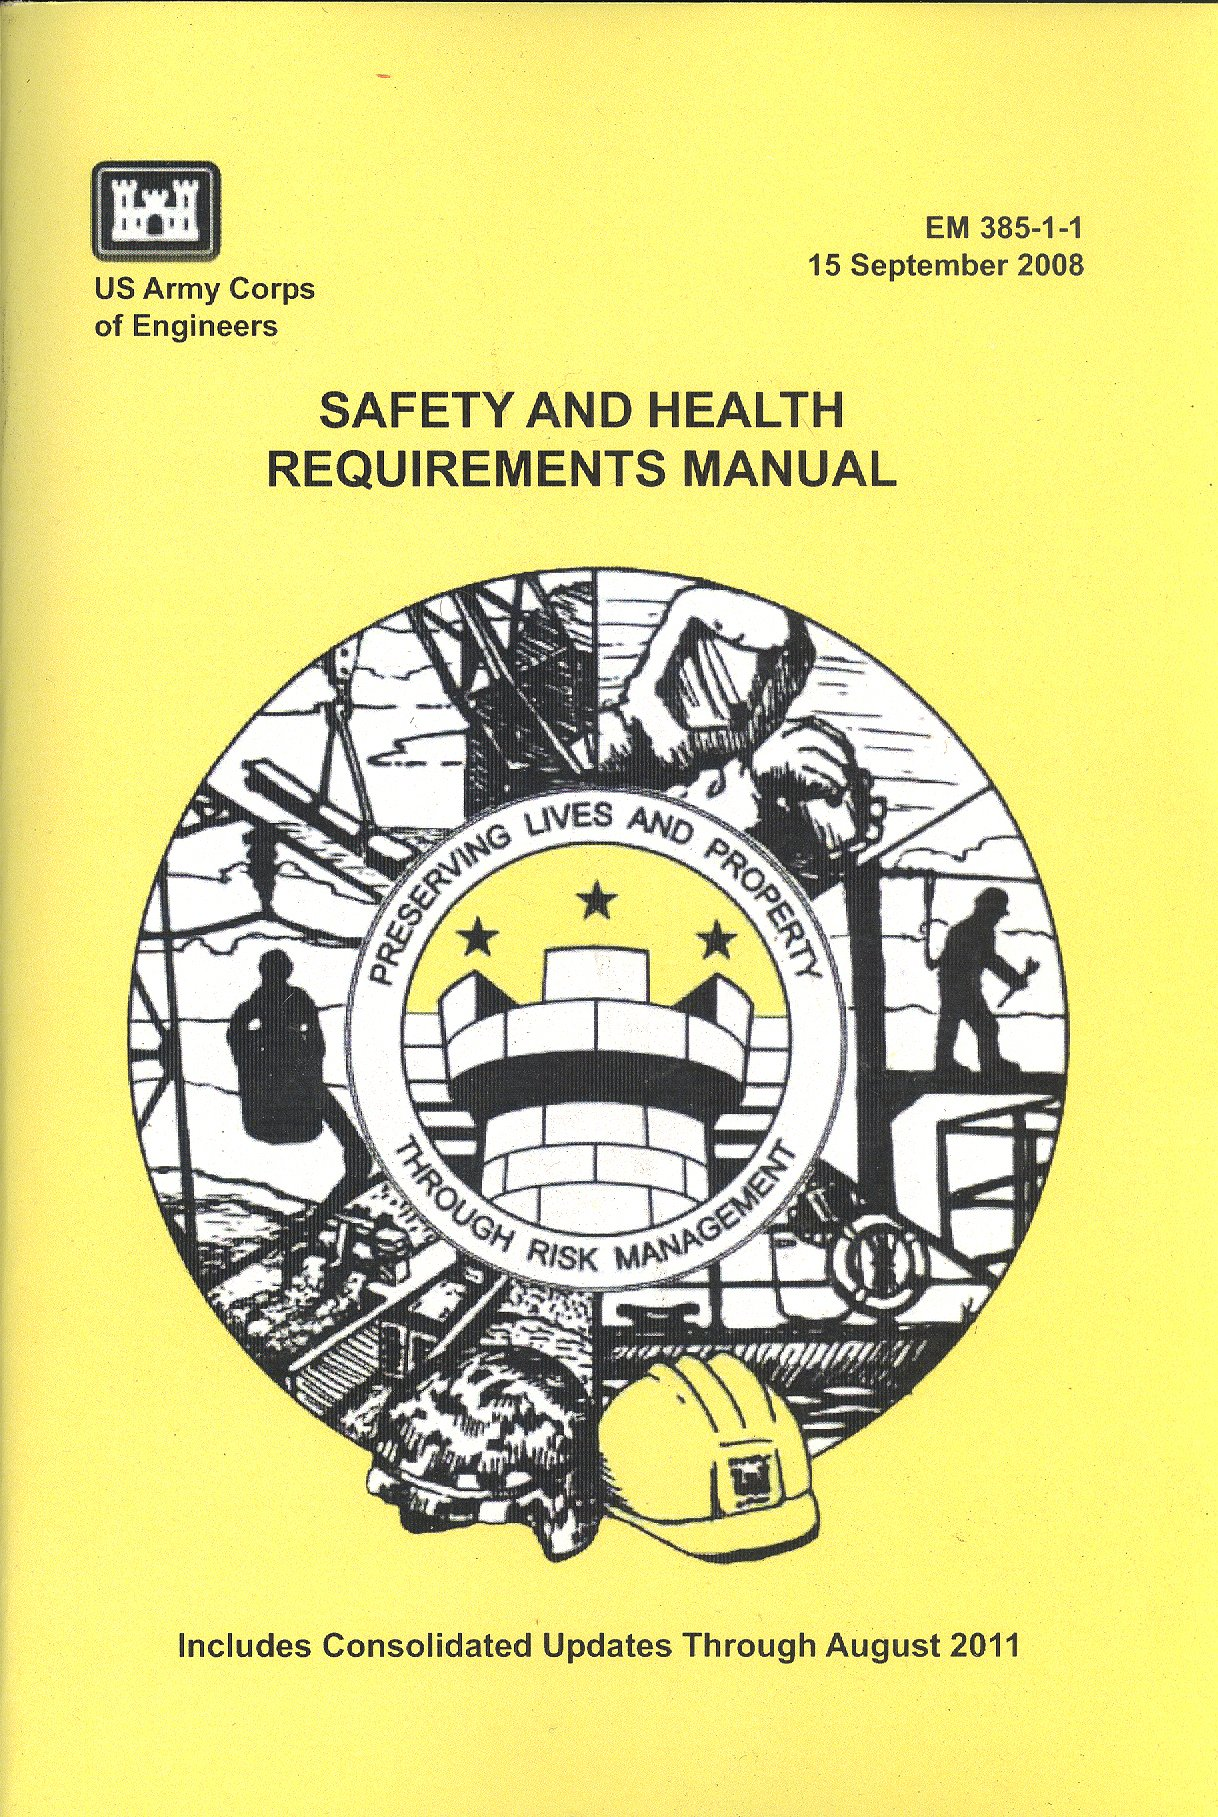 safety and health requirements em385 1 1 us army corps of rh amazon com em 385 1 1 manual download em 385-1-1 safety and health requirements manual